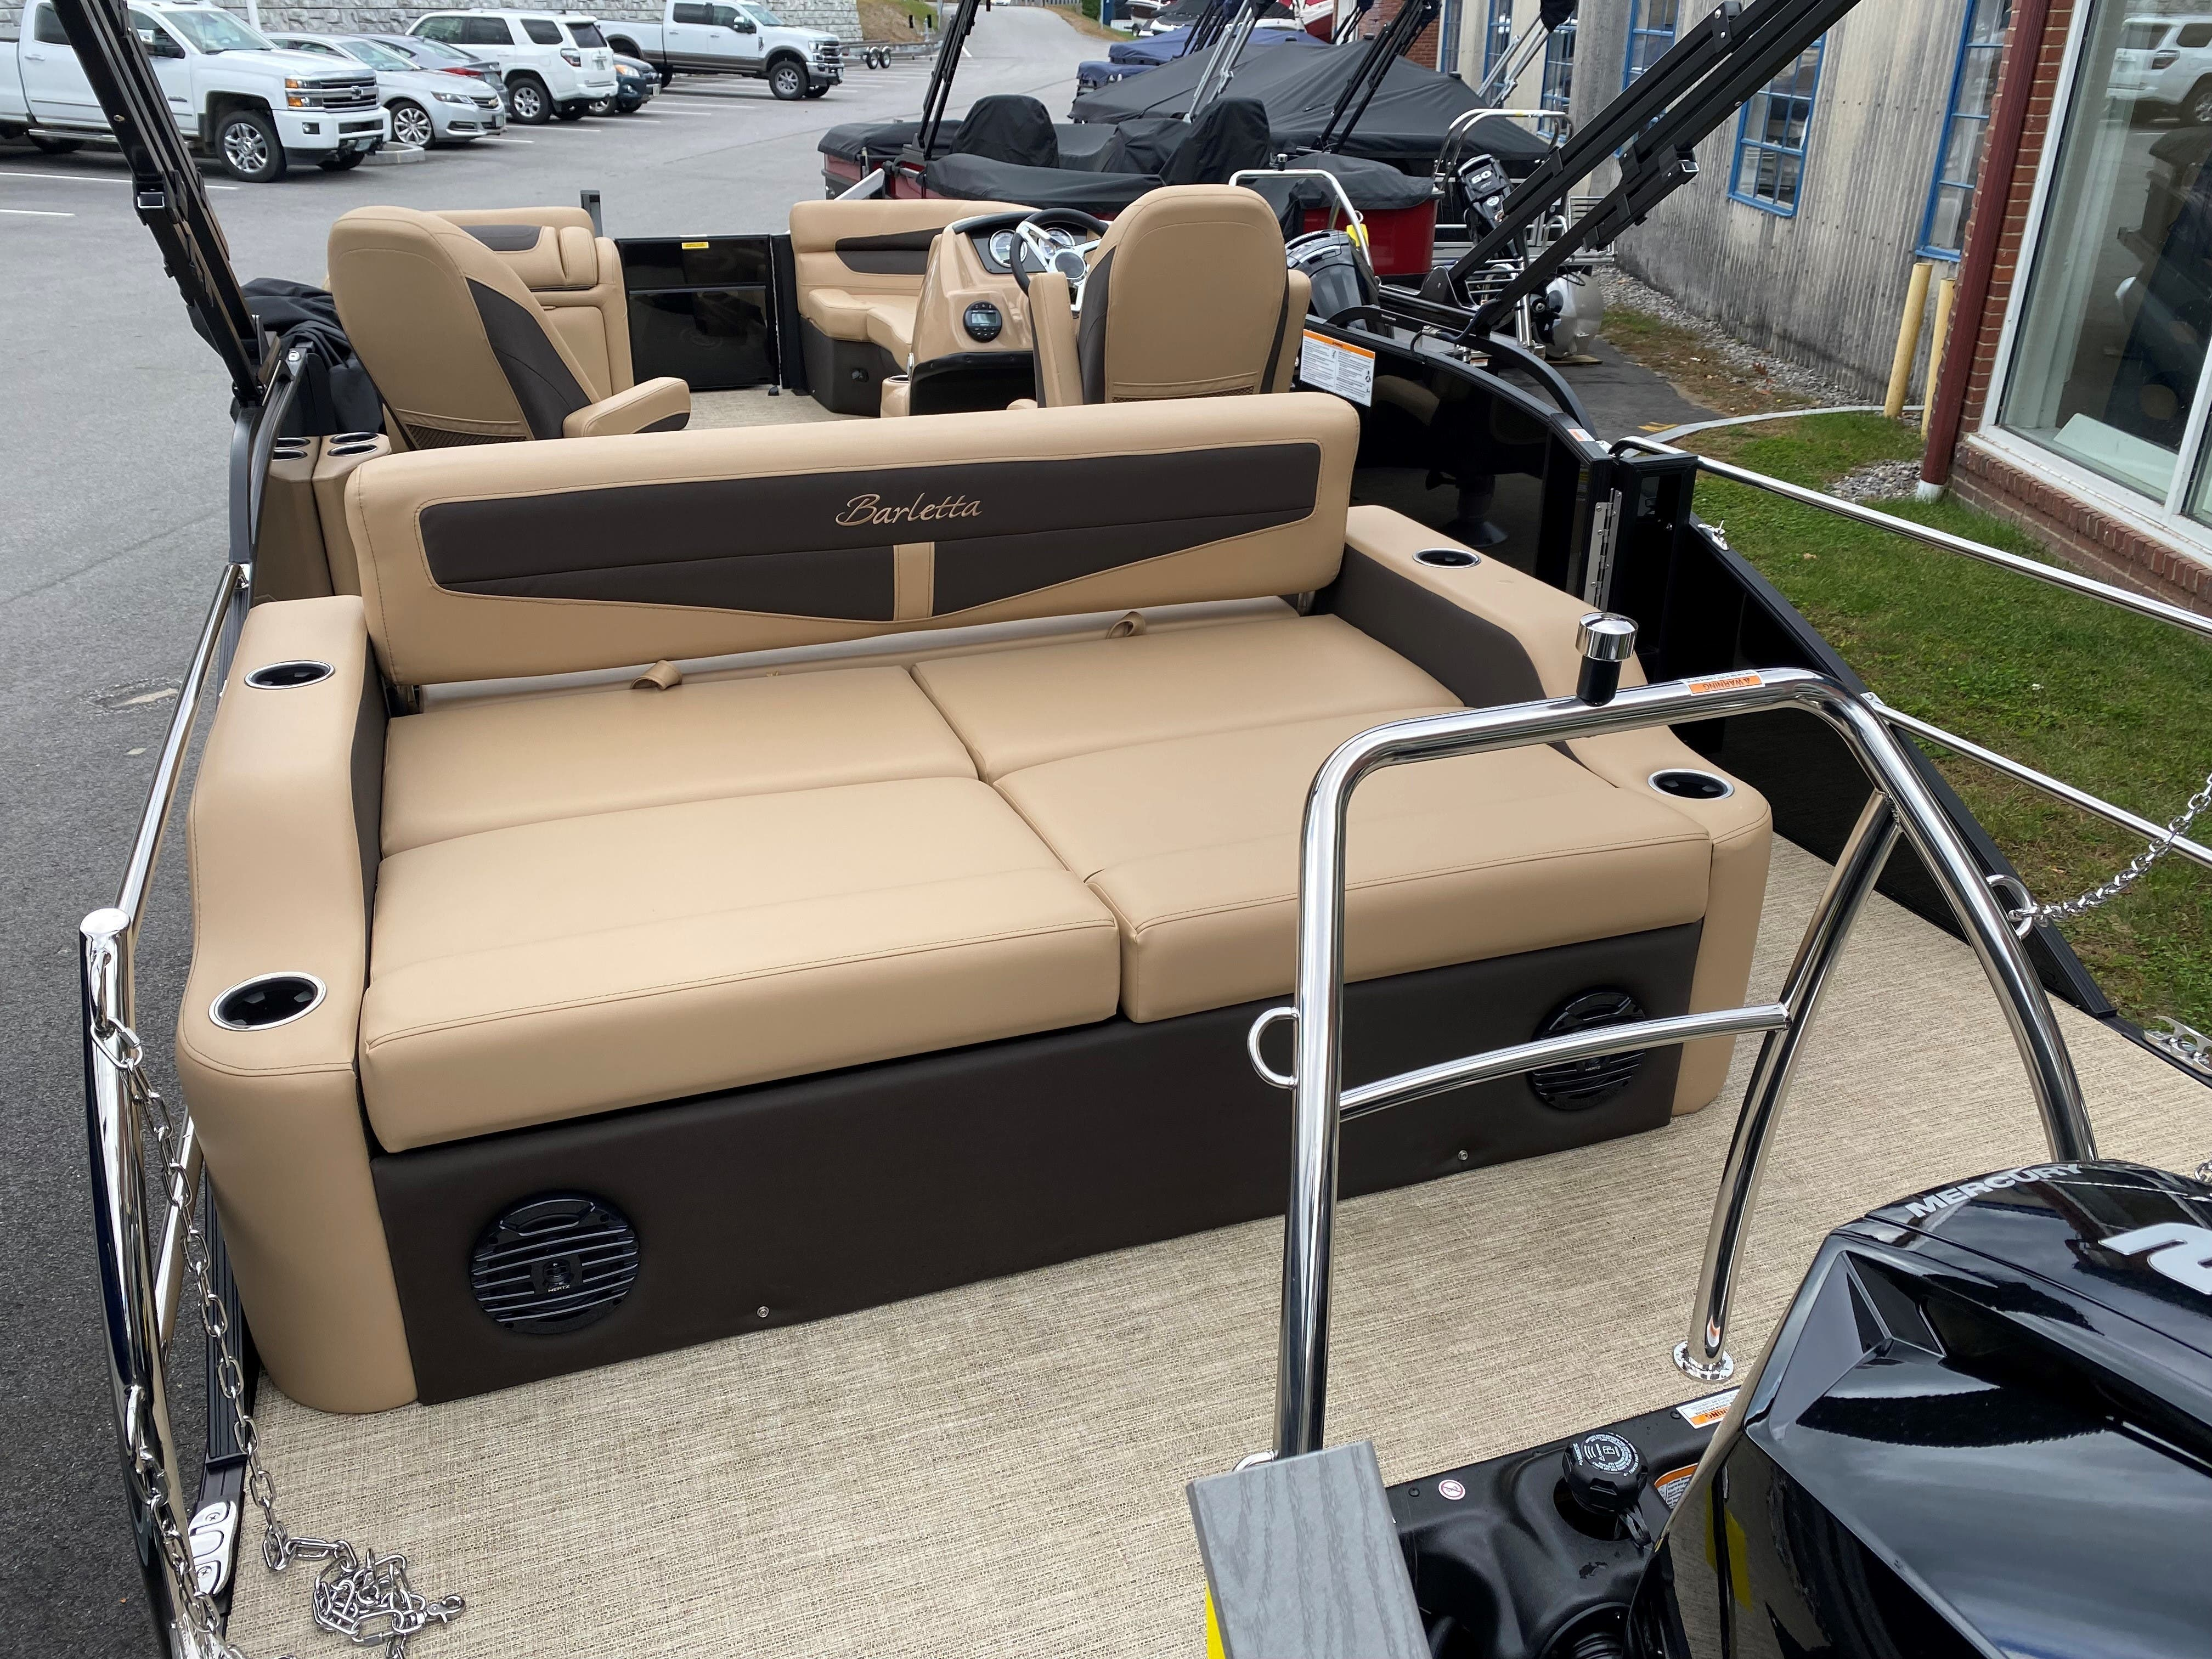 2022 Barletta boat for sale, model of the boat is C22UC & Image # 6 of 12